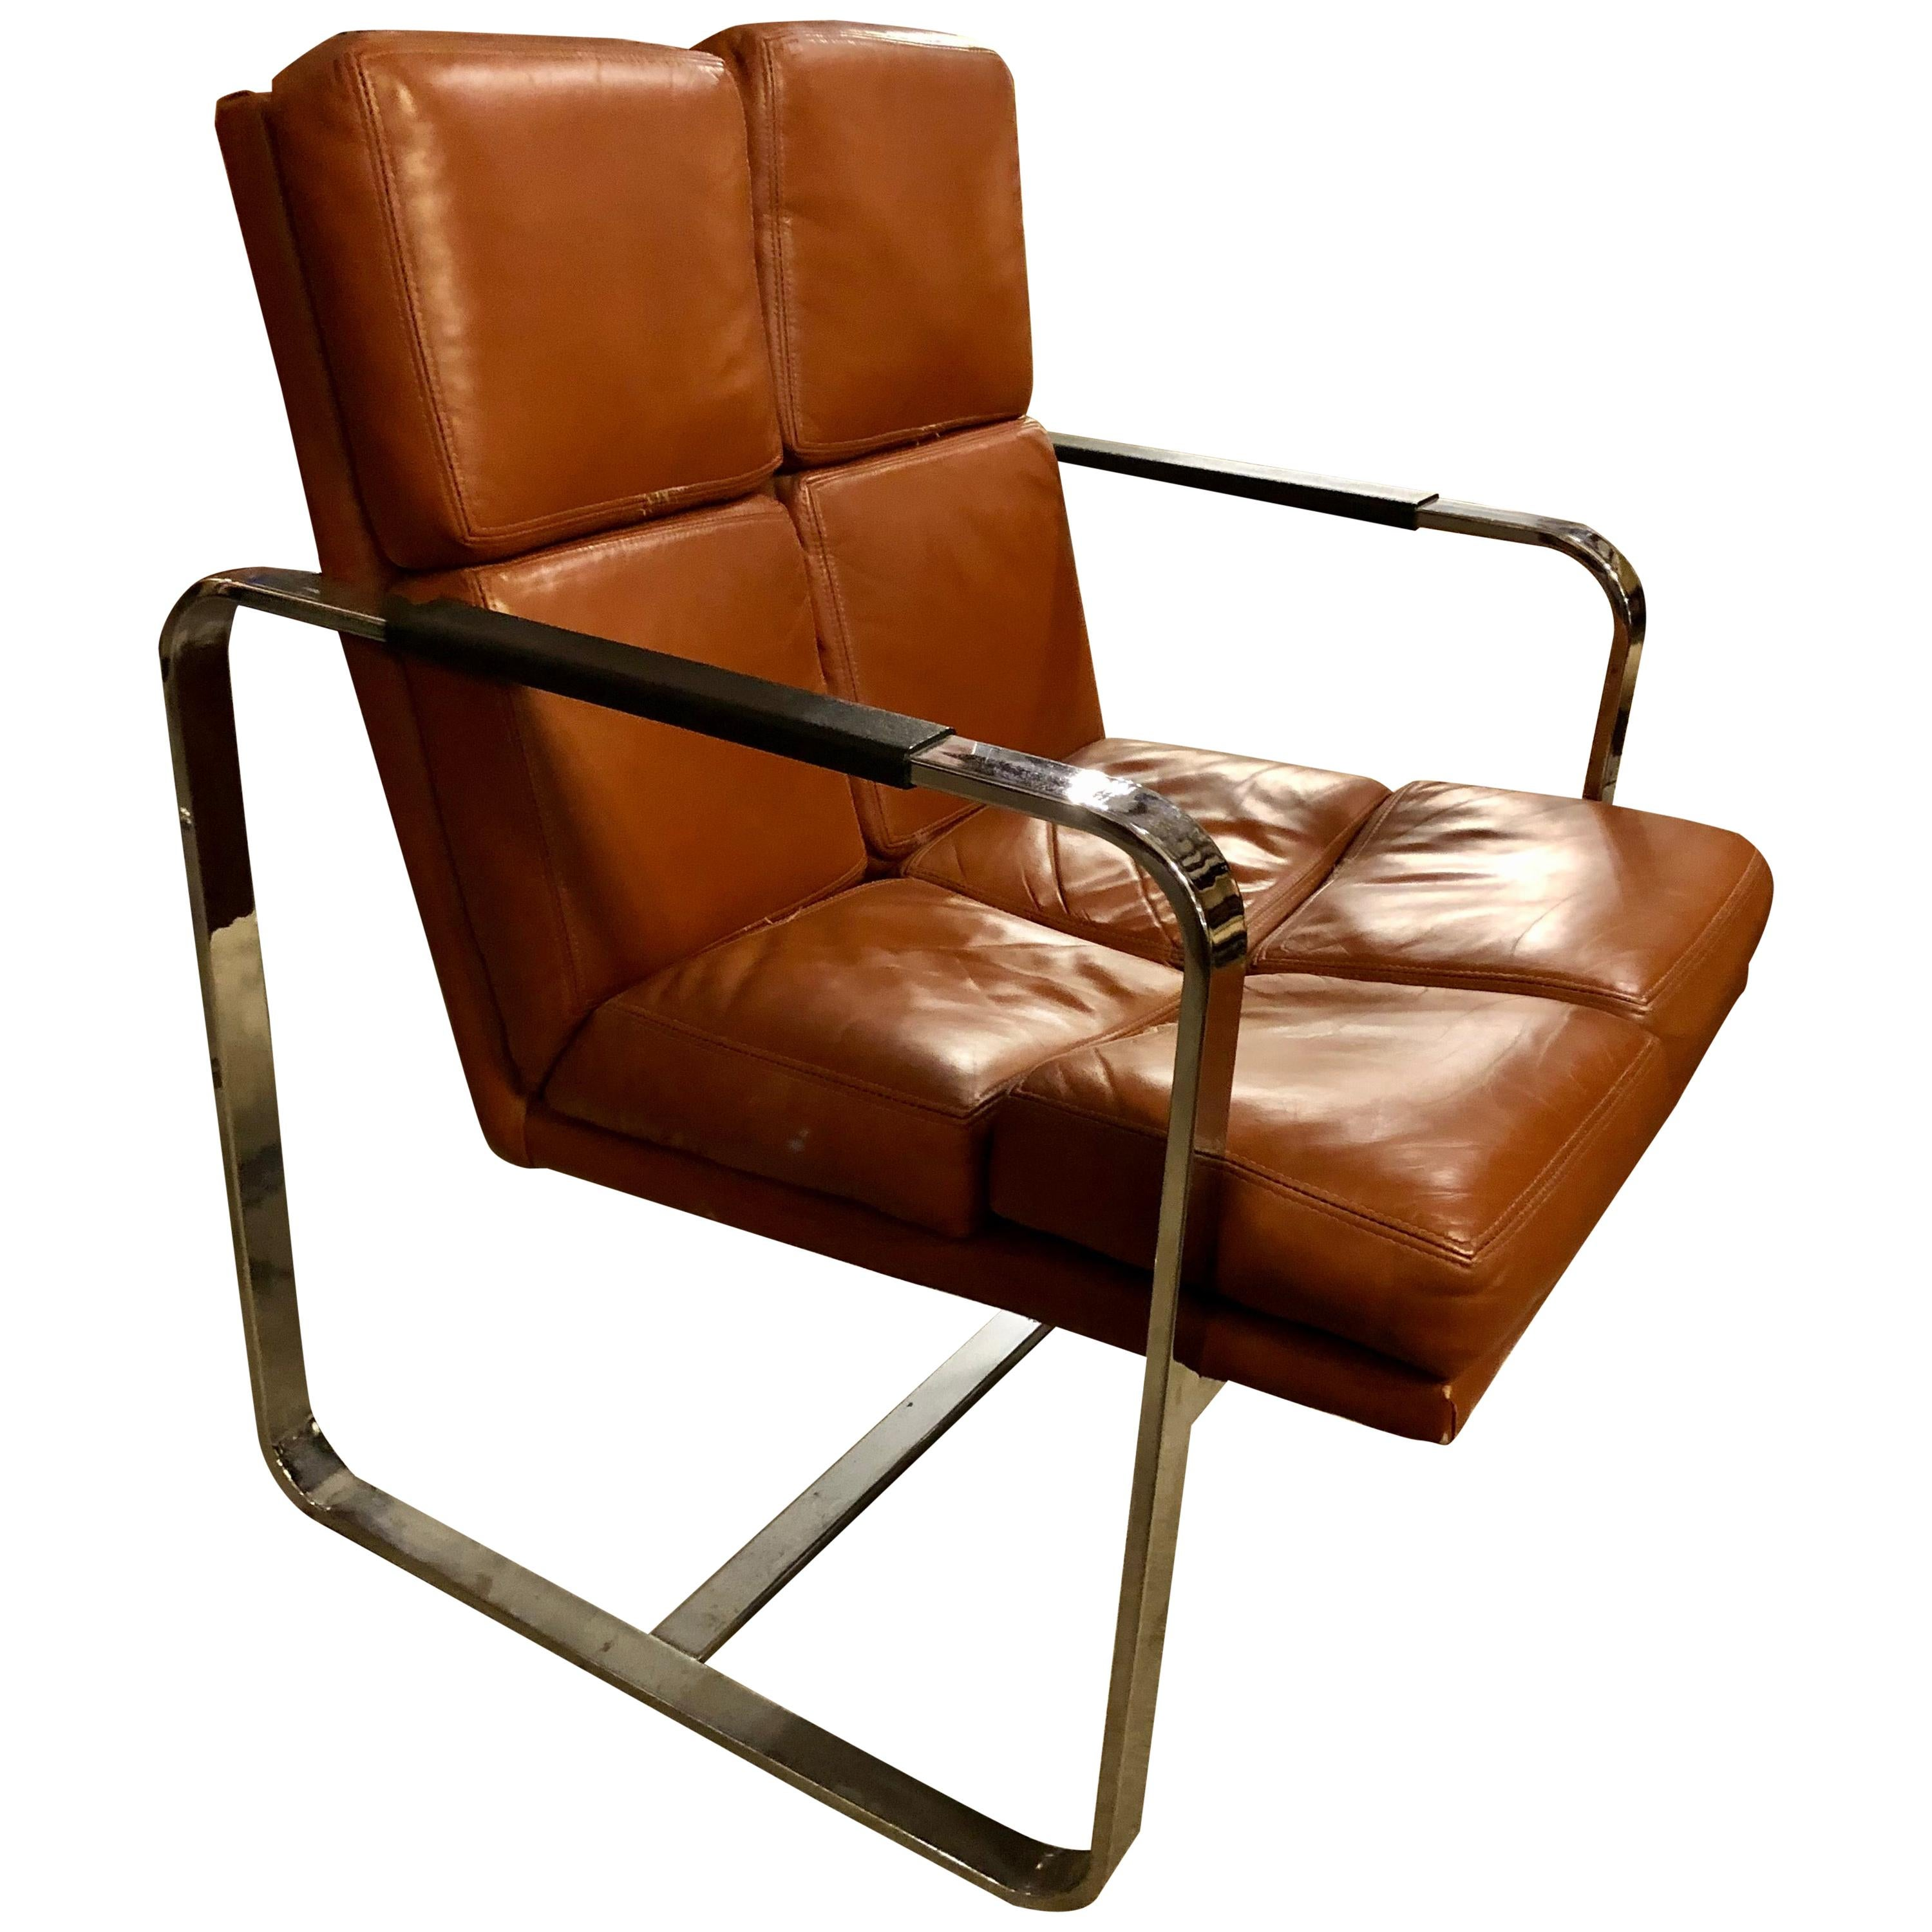 Vintage 1970s Leather and Chrome Armchairs by Milo Baughman for Thayer Coggin